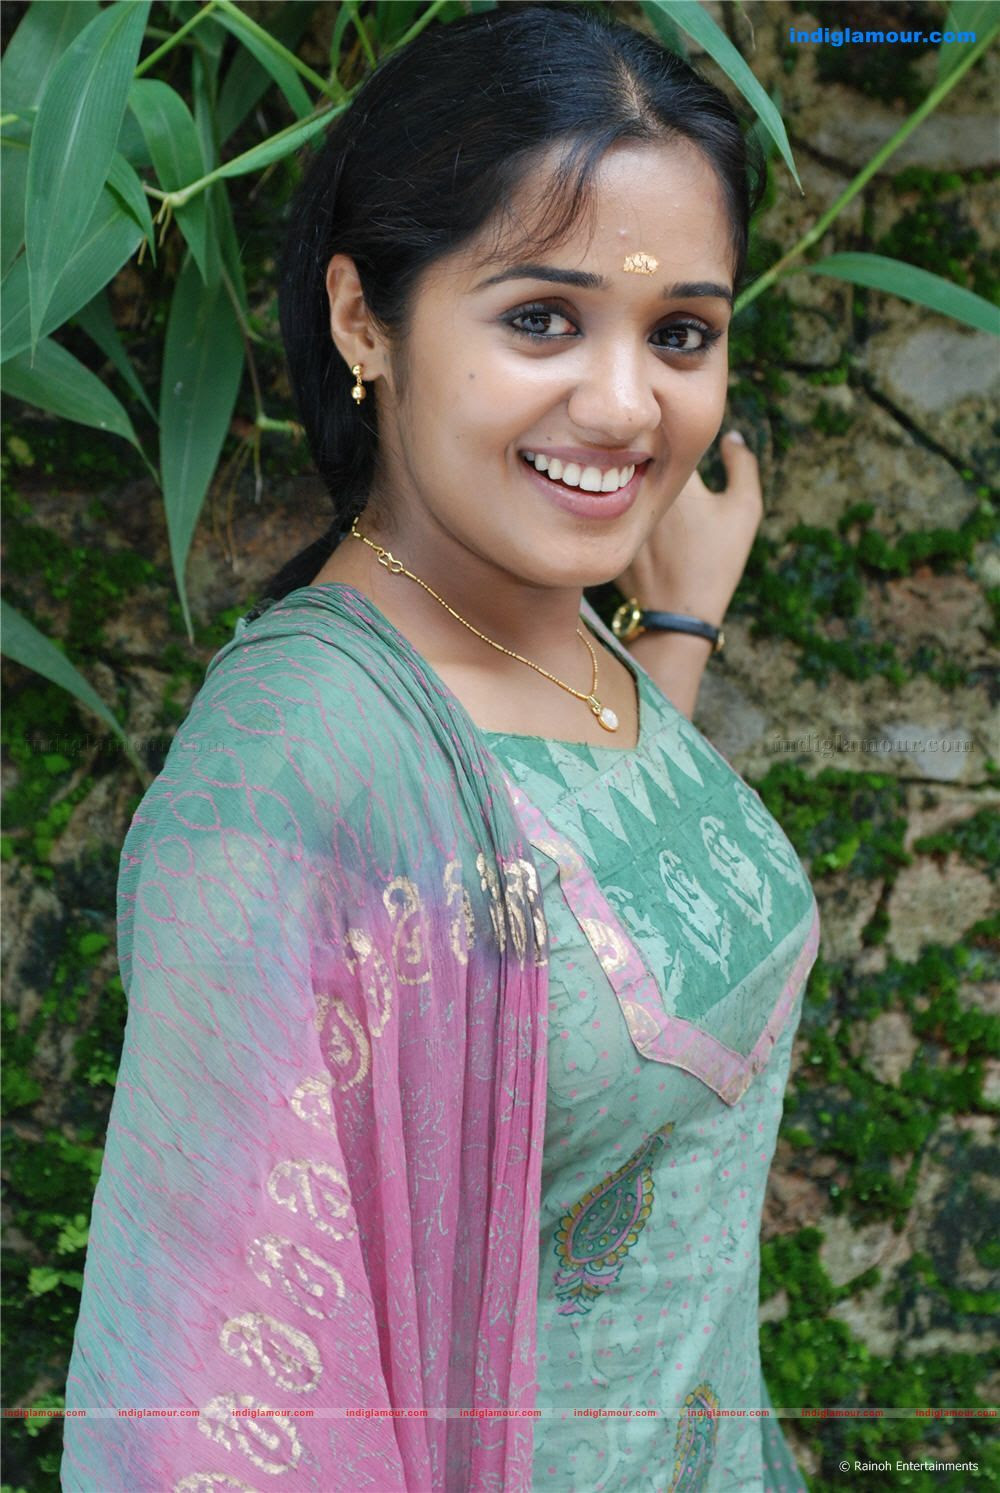 Malayalam Film Actress Ananya Very Hot And Sexy Wallpapers -8259